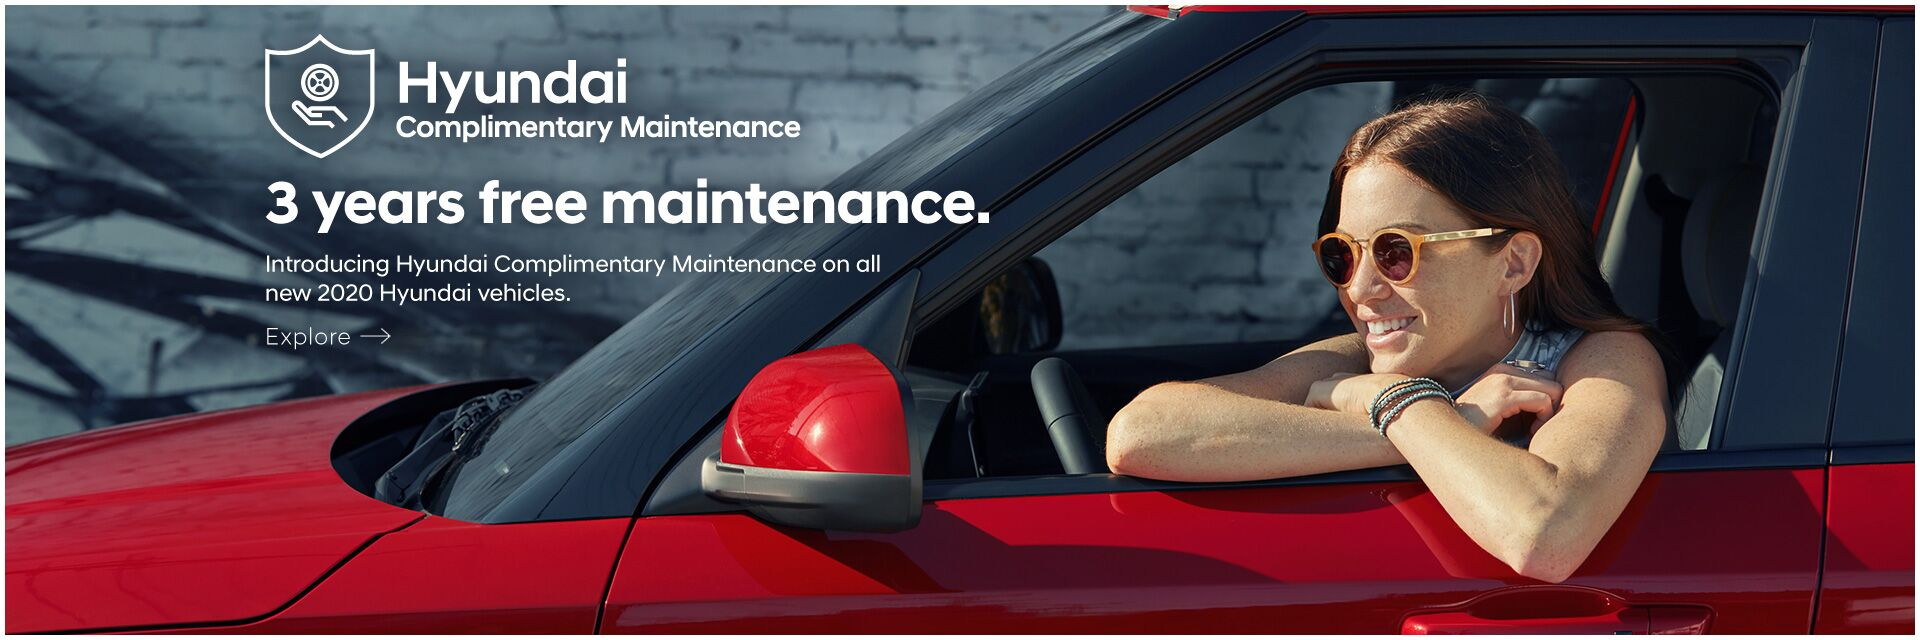 Complimentary Maintenance